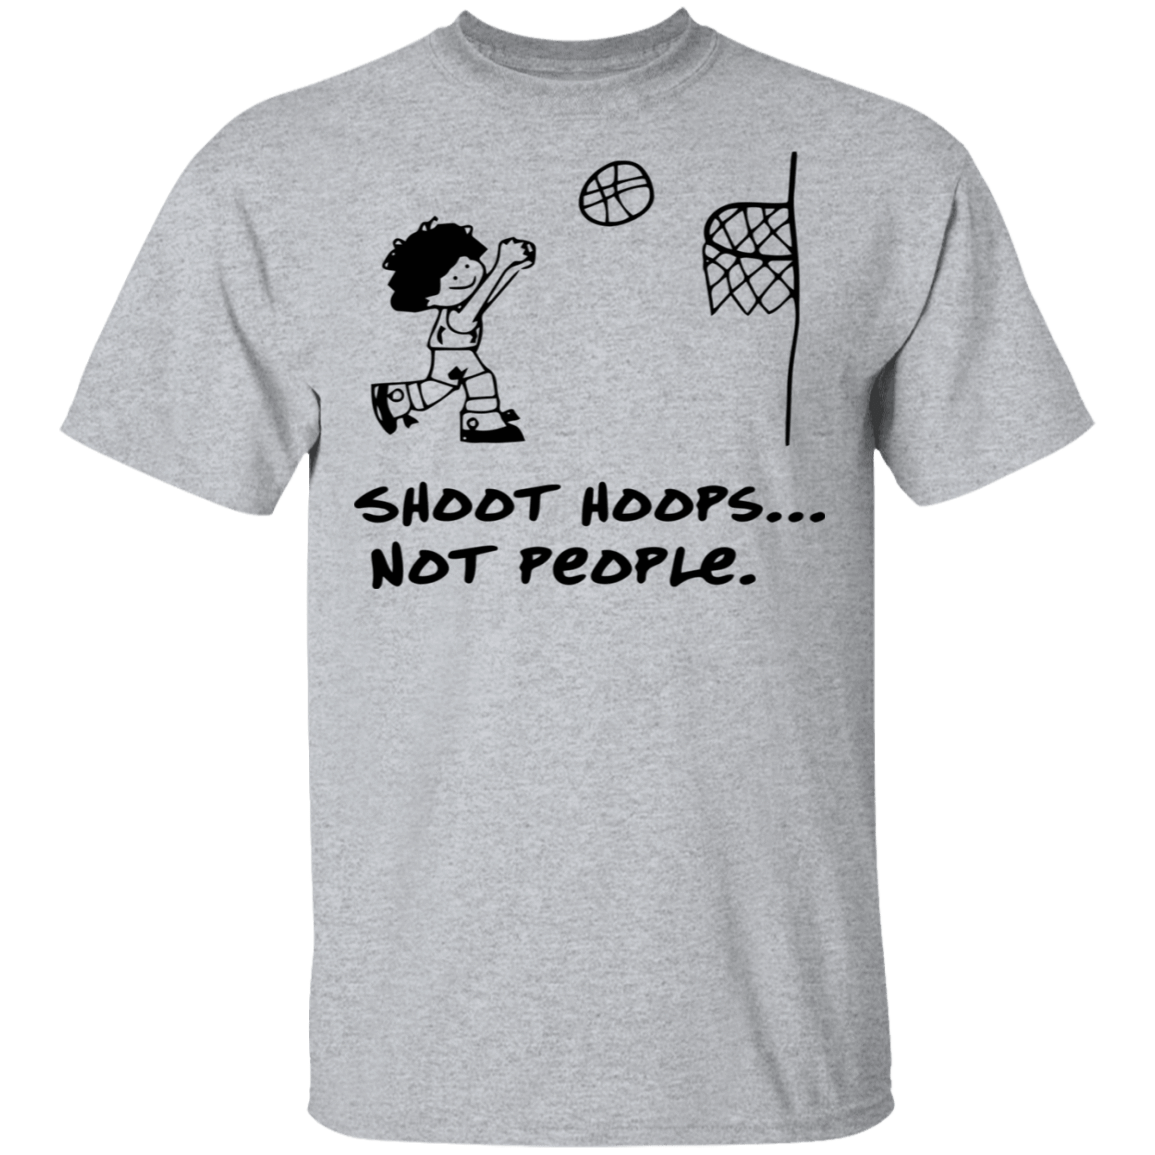 Shoot Hoops Not People T-Shirts, Hoodies, Tank 22-115-79279842-254 - Tee Ript